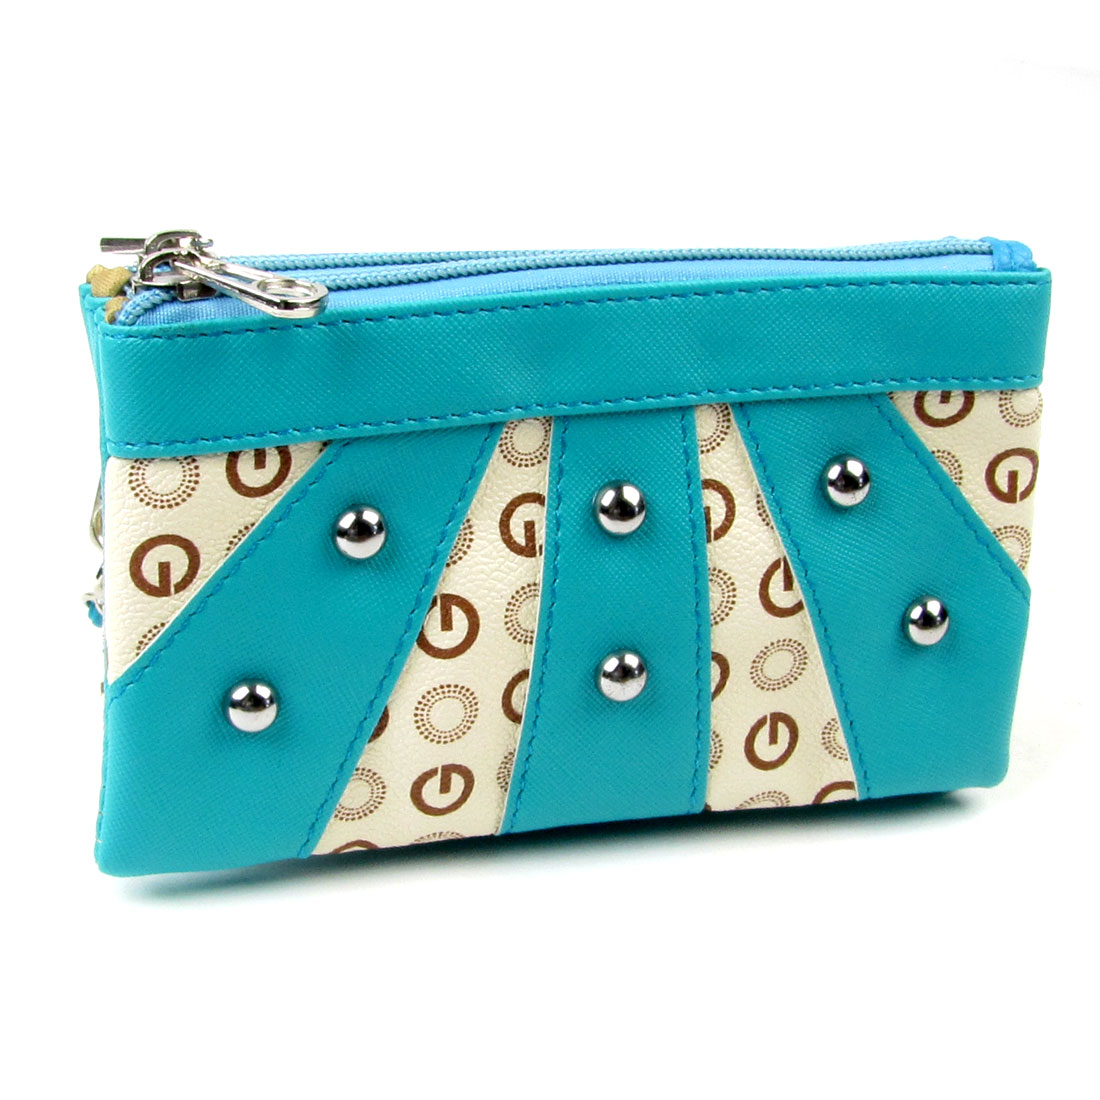 Stud Decor Faux Leather Double Zipper Closure Wallet Holder Blue Ivory for Woman